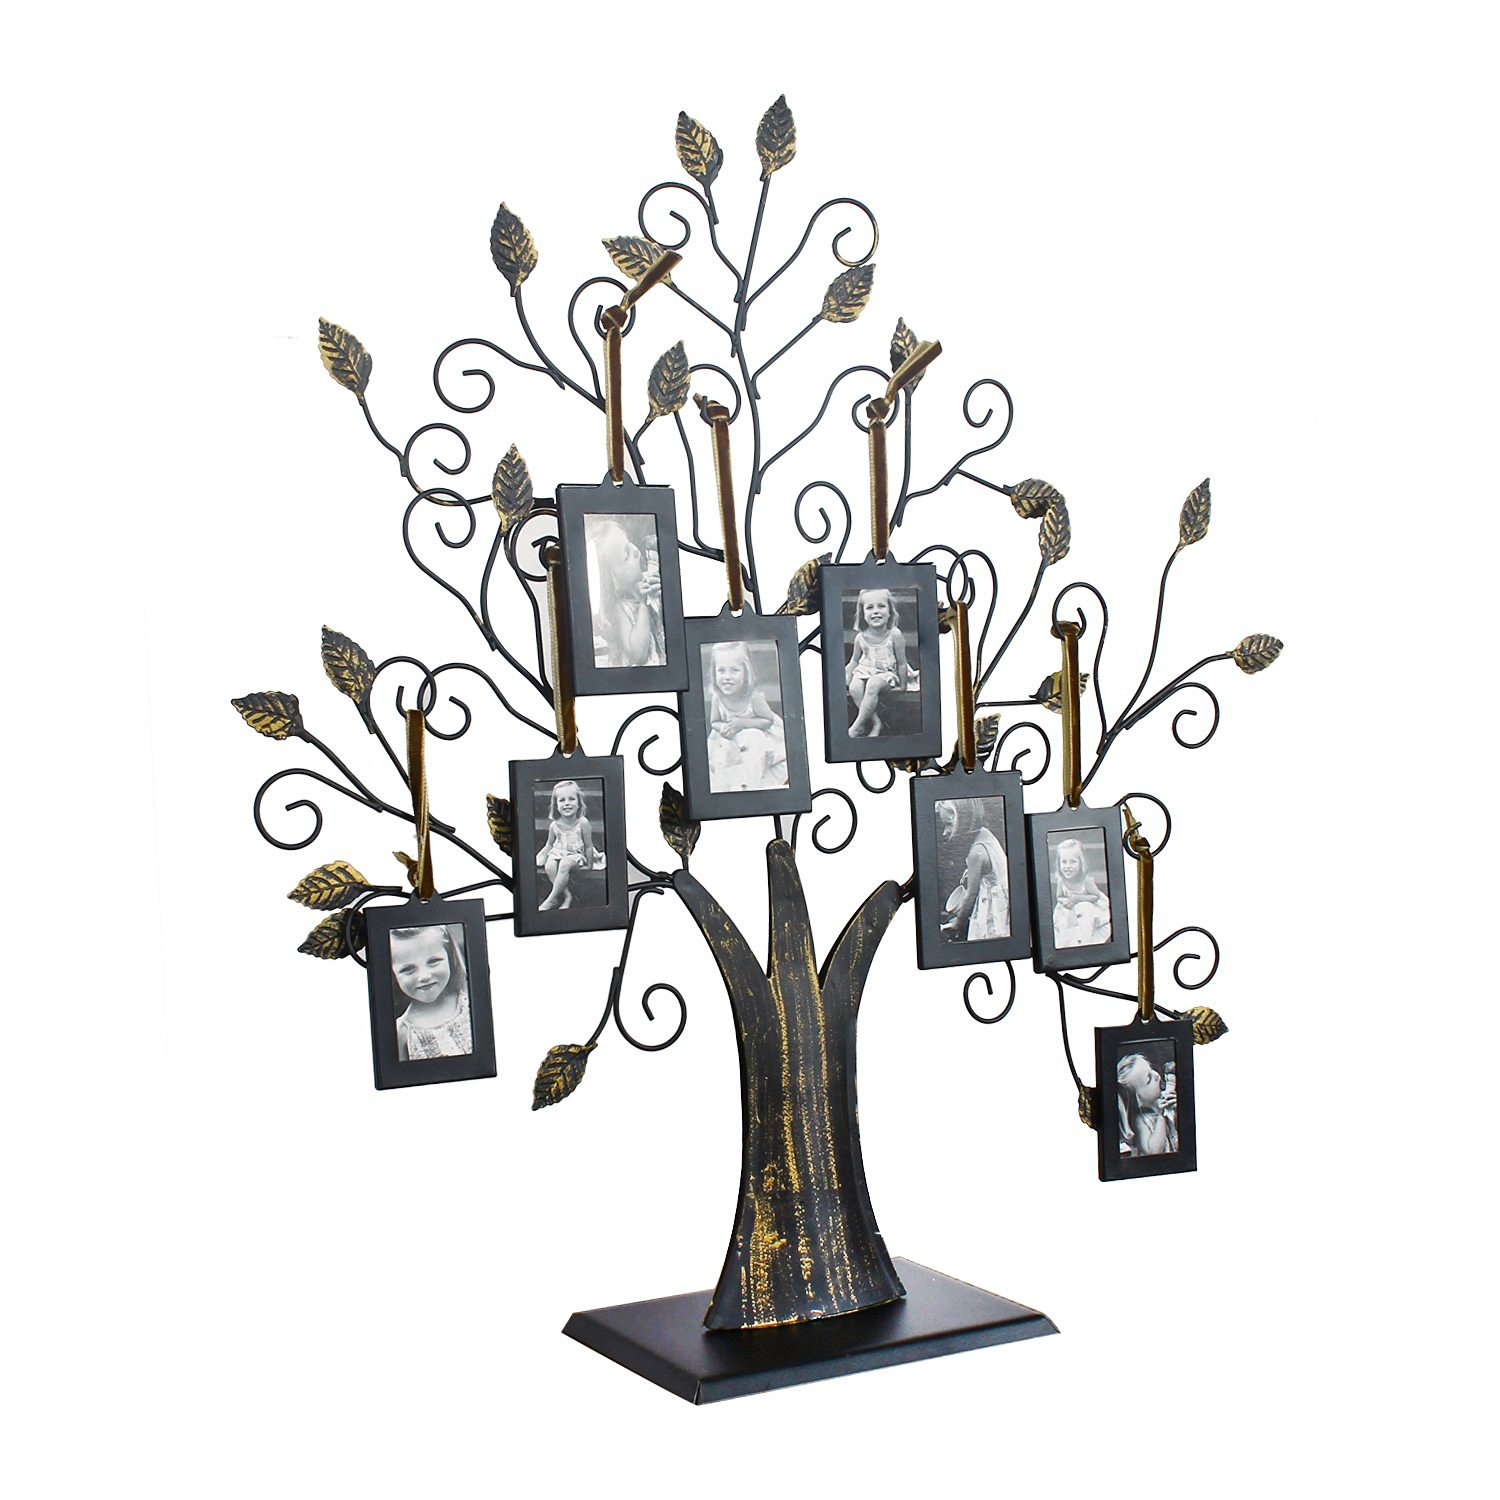 Buy Family Tree Wall hanging Decorative Collage Picture Photo Frame ...